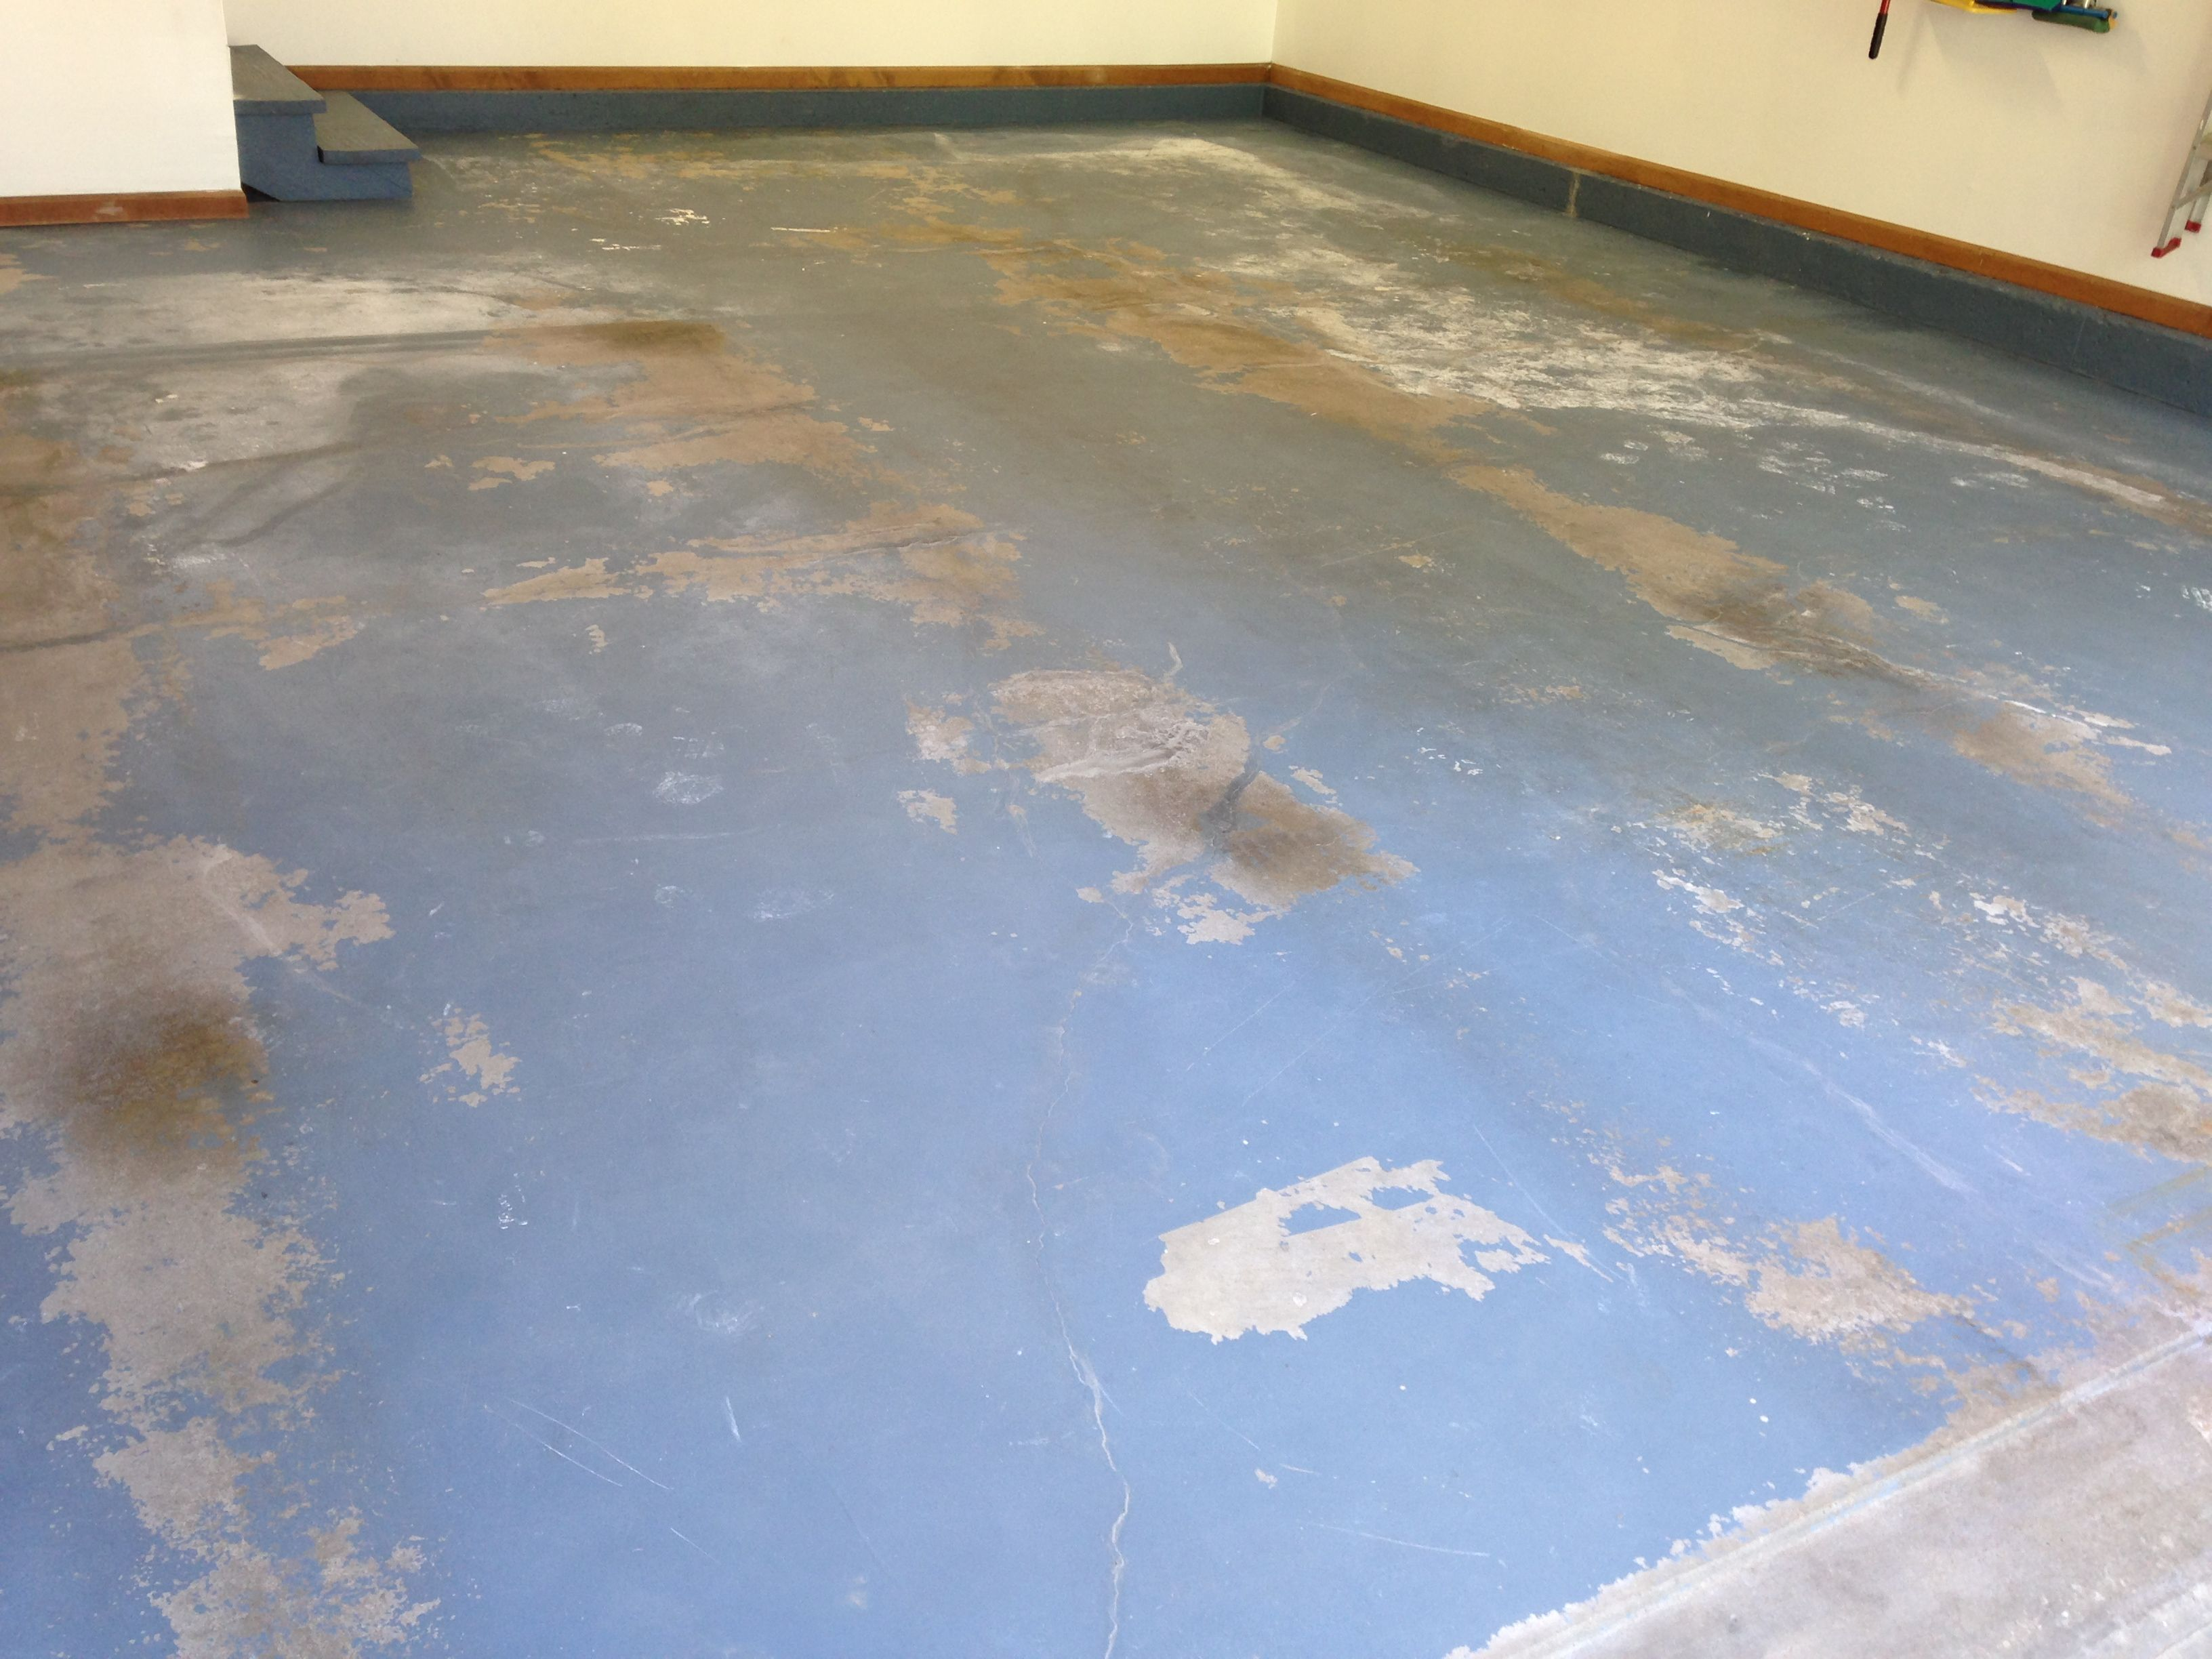 Does your garage look like this you might need some garage flooring garage flooring tiles mats rolls coatings garageflooringllc dailygadgetfo Images